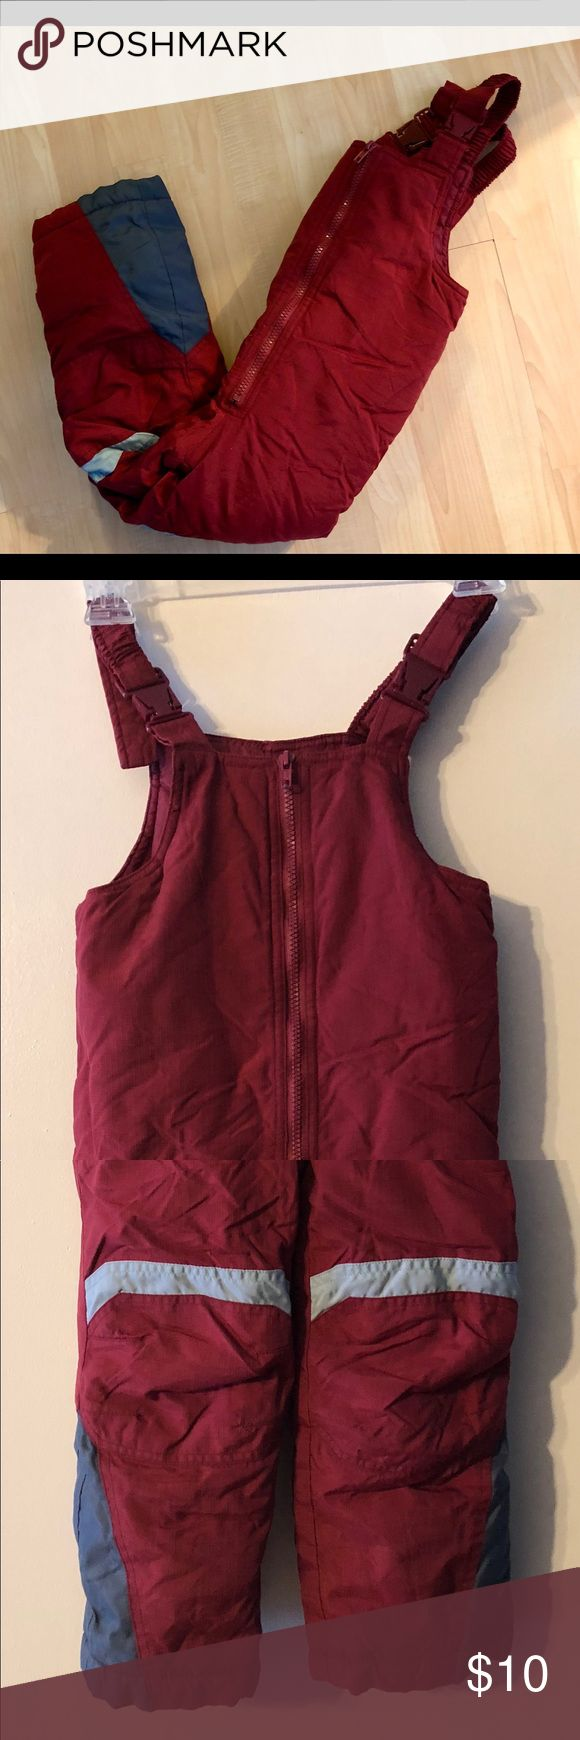 Kids Snow bibs Kids snow bibs size 4. Bibs have adjustable straps and are in good condition. Jackets & Coats